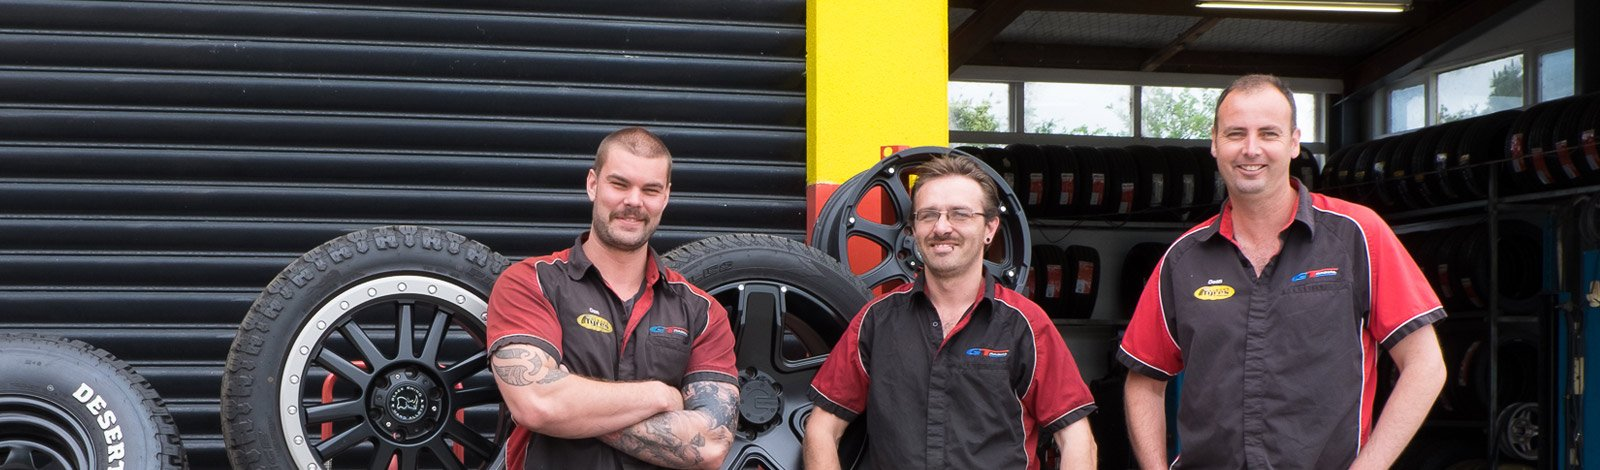 albany-tyres-team-home